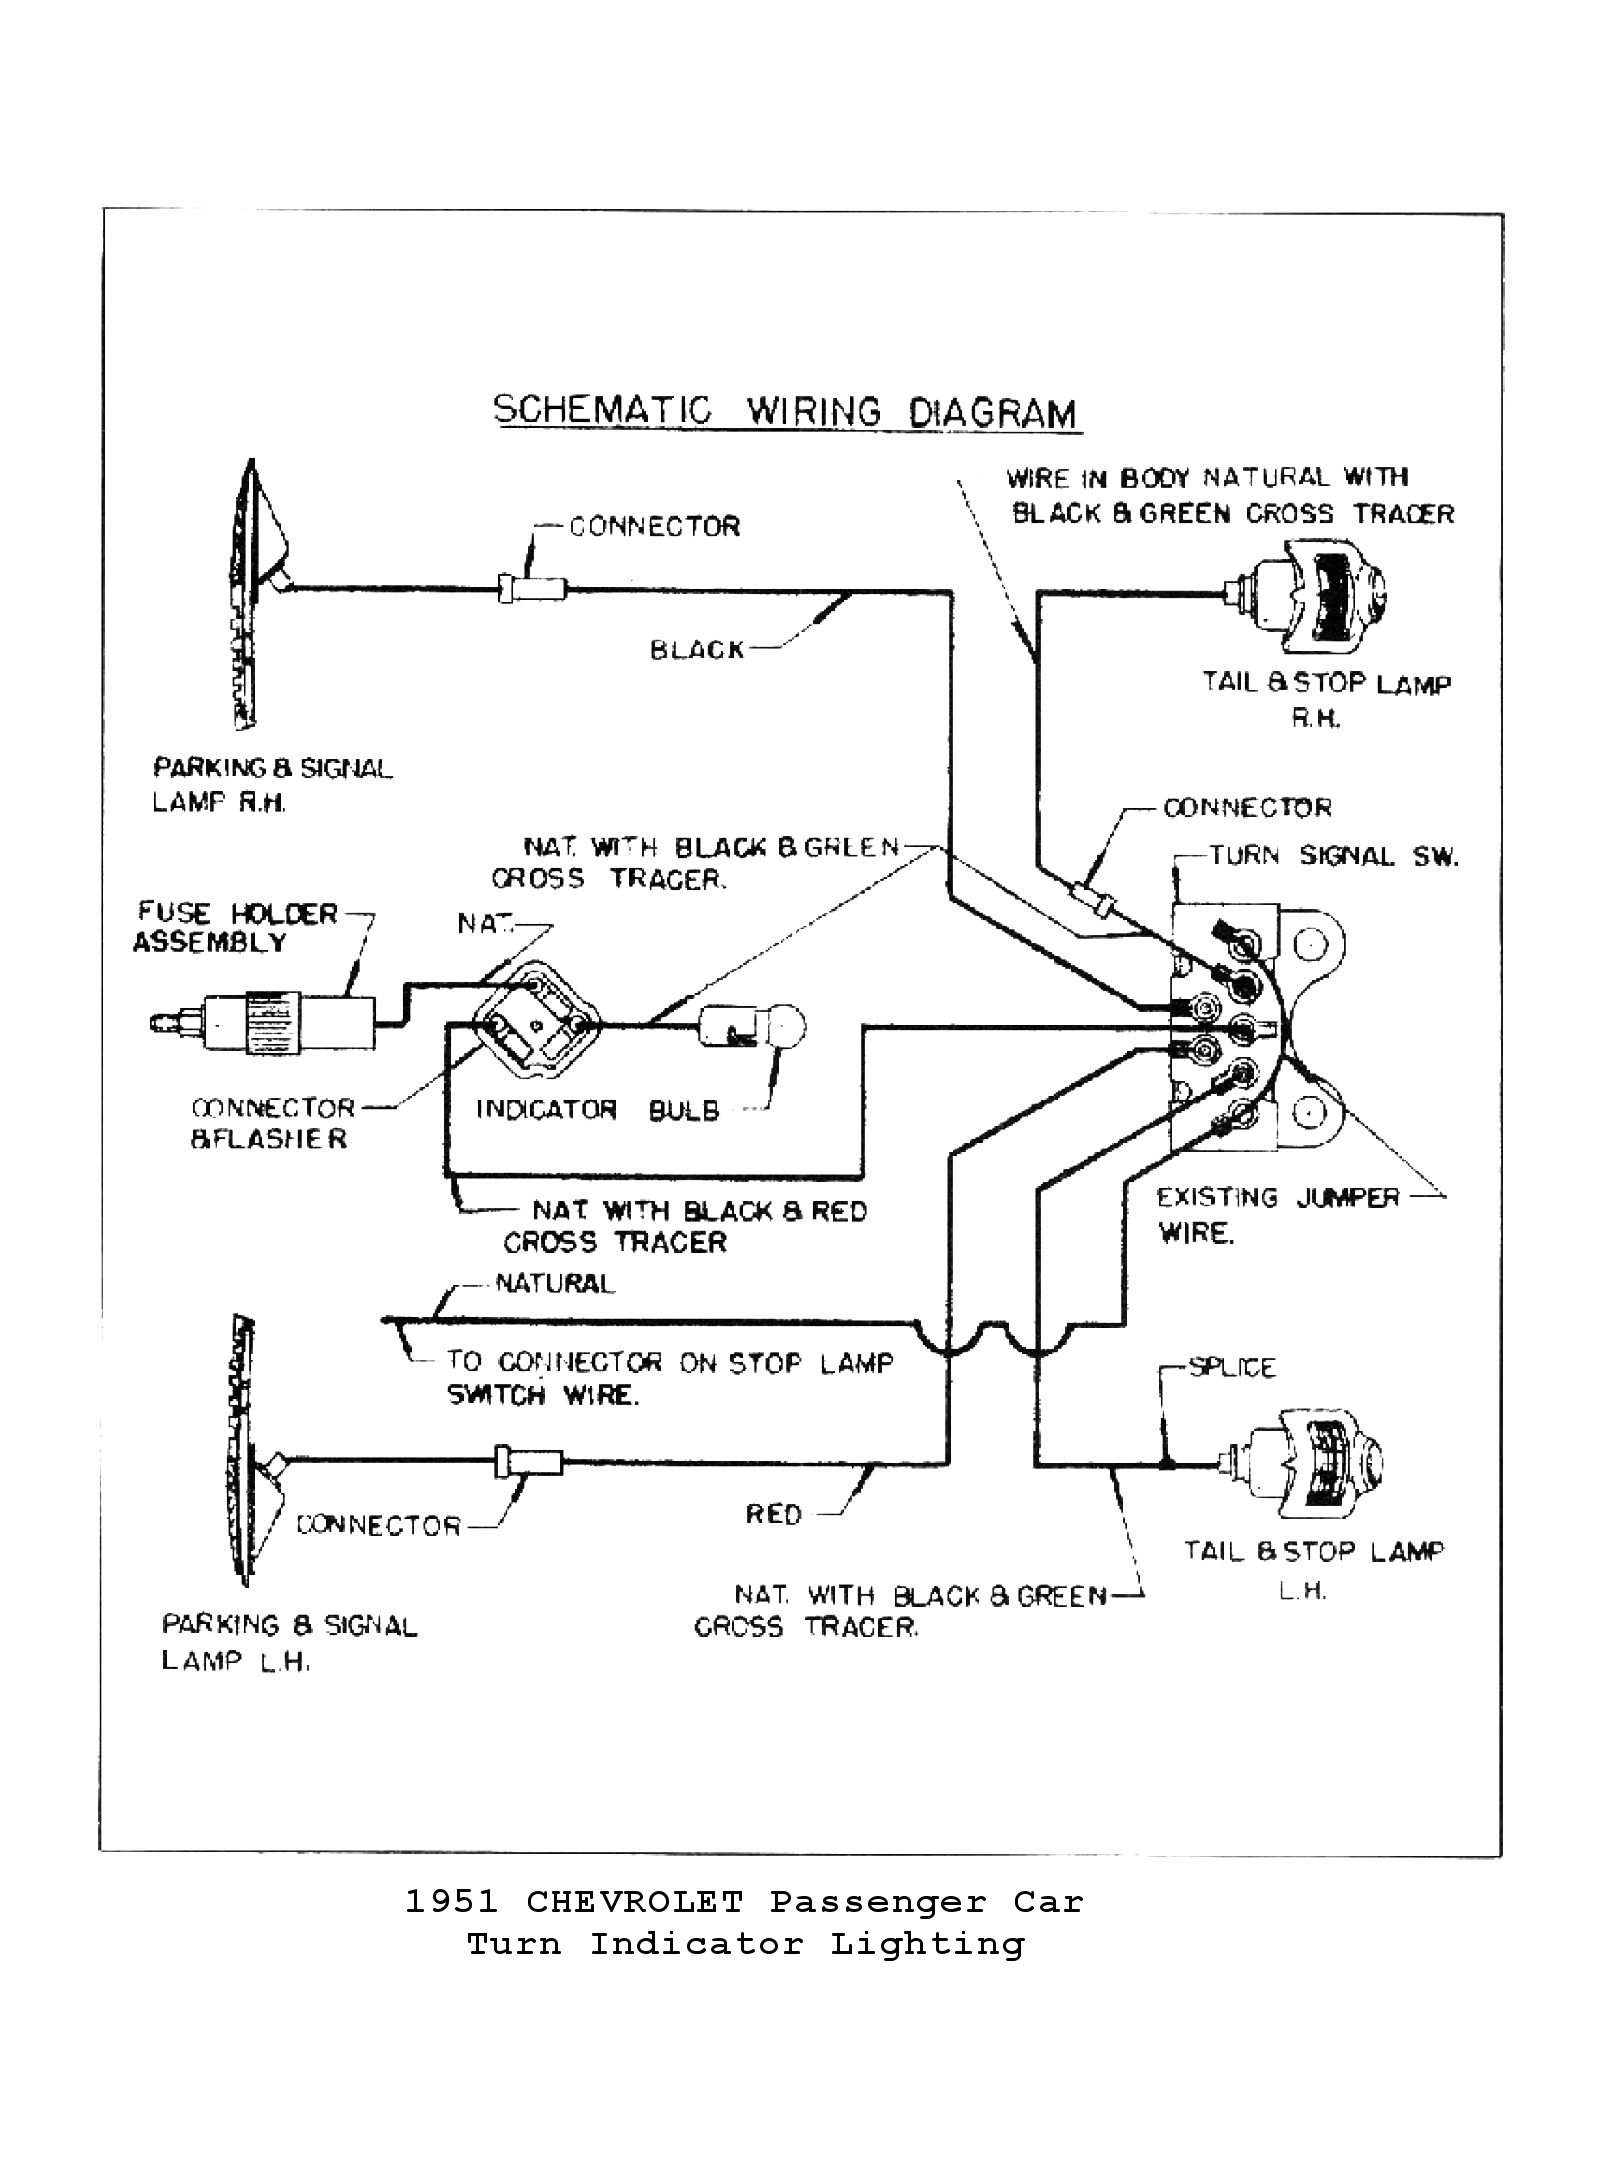 Gm Auto Wiring Electrical Work Diagram 1966 C10 Chevy Diagrams Rh Oldcarmanualproject Com Dimming Mirror Wire